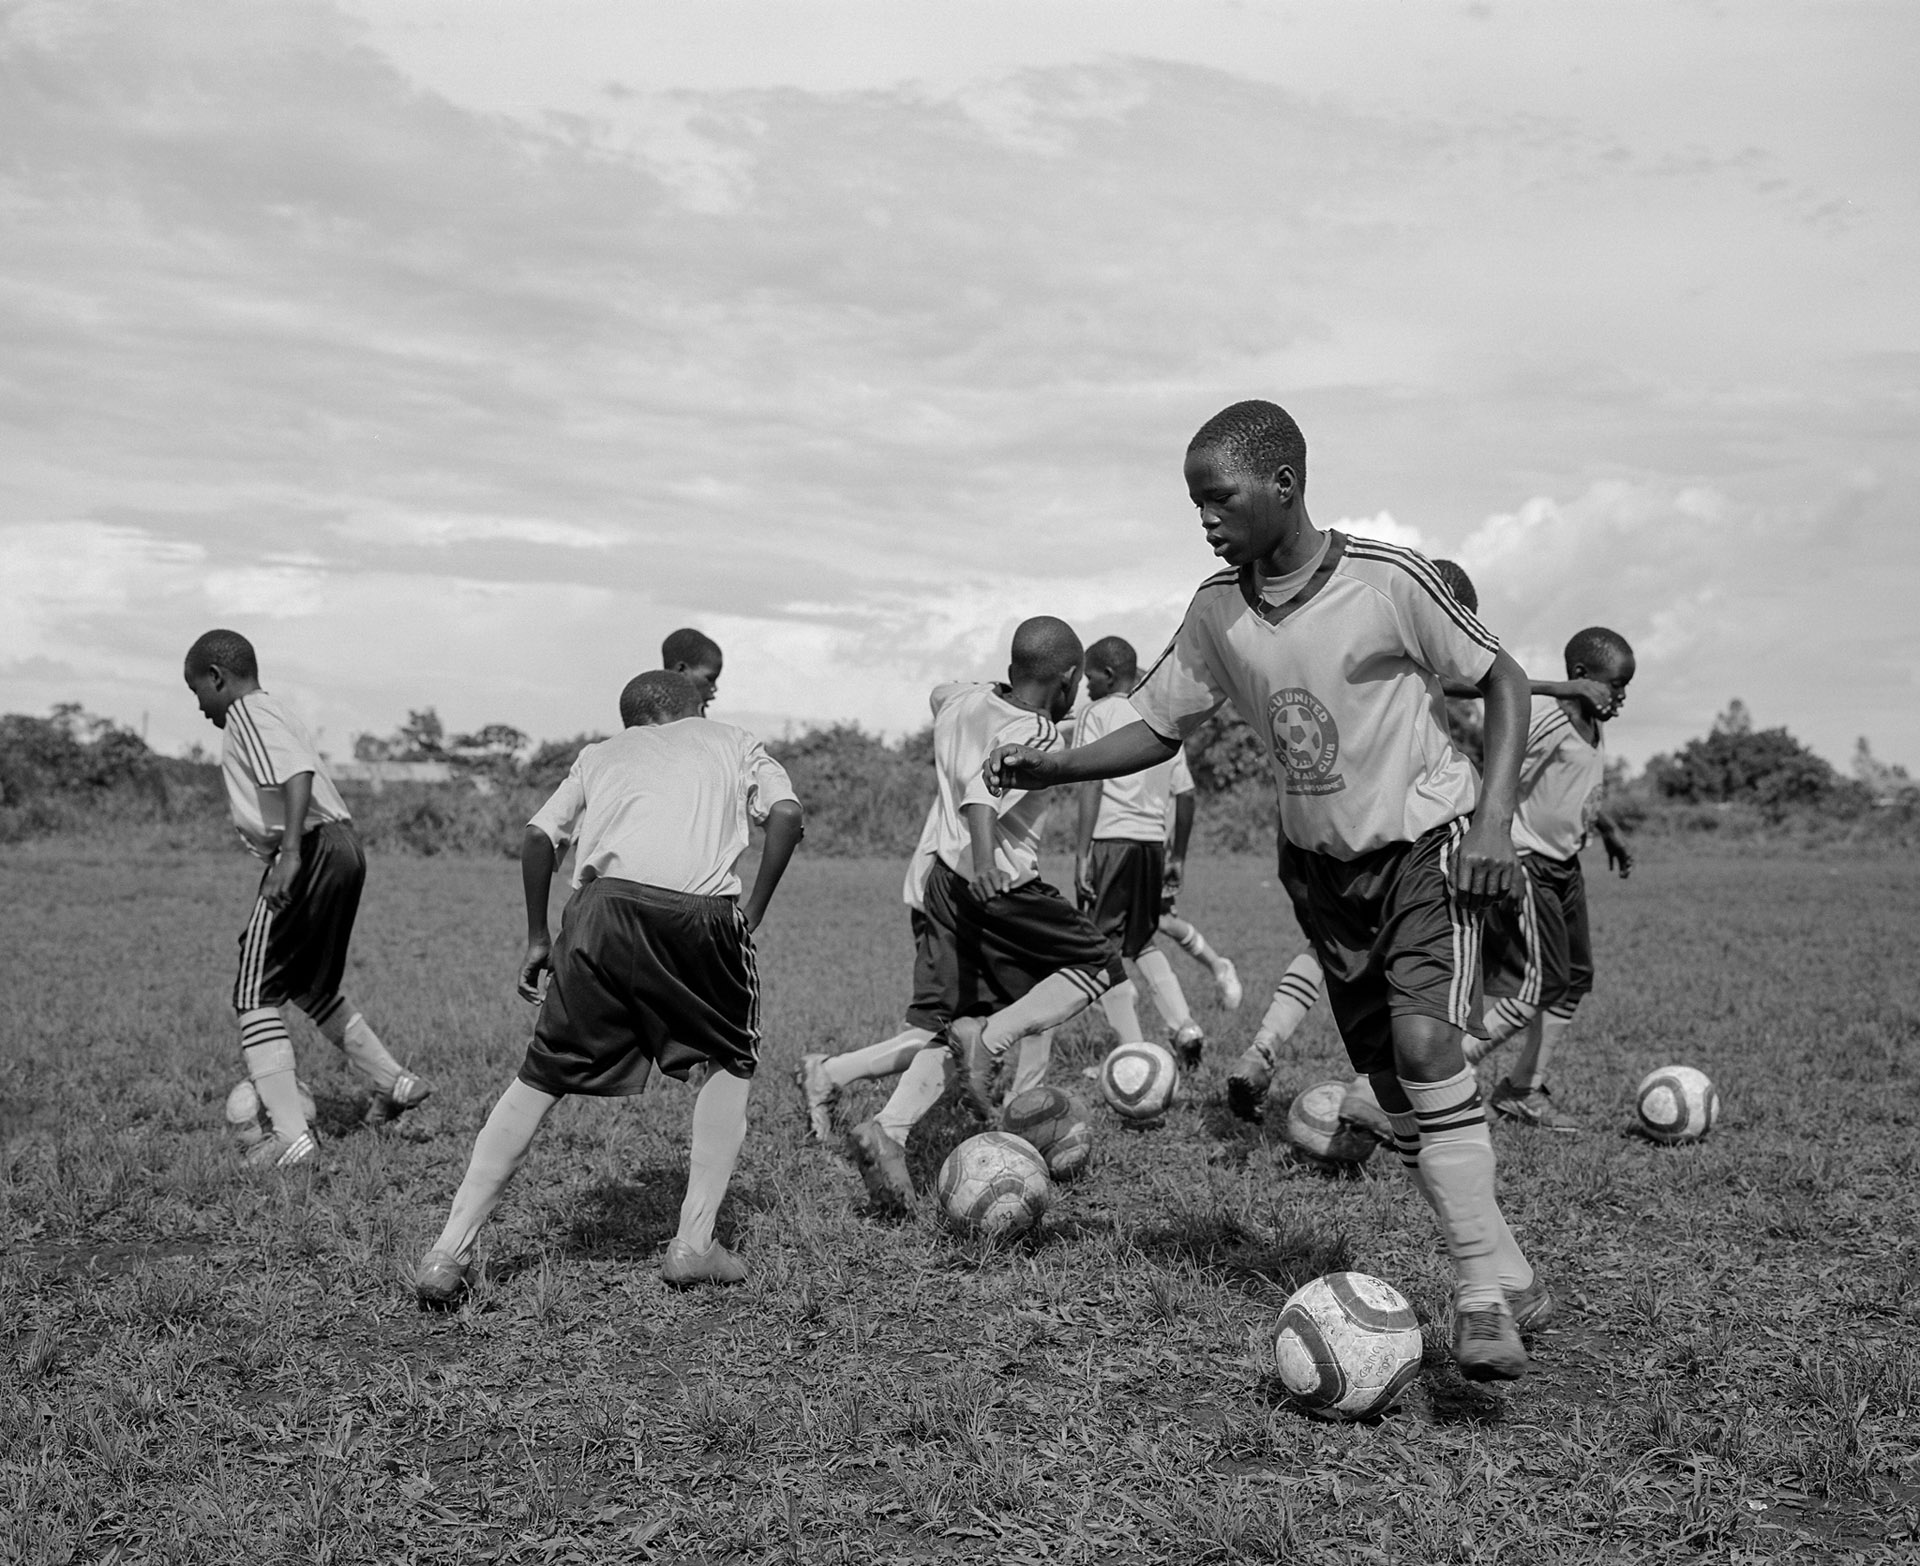 young black soccer players practicing their kicks in black and white by Alexi Hobbs in Uganda for Football for good with Sportsnet